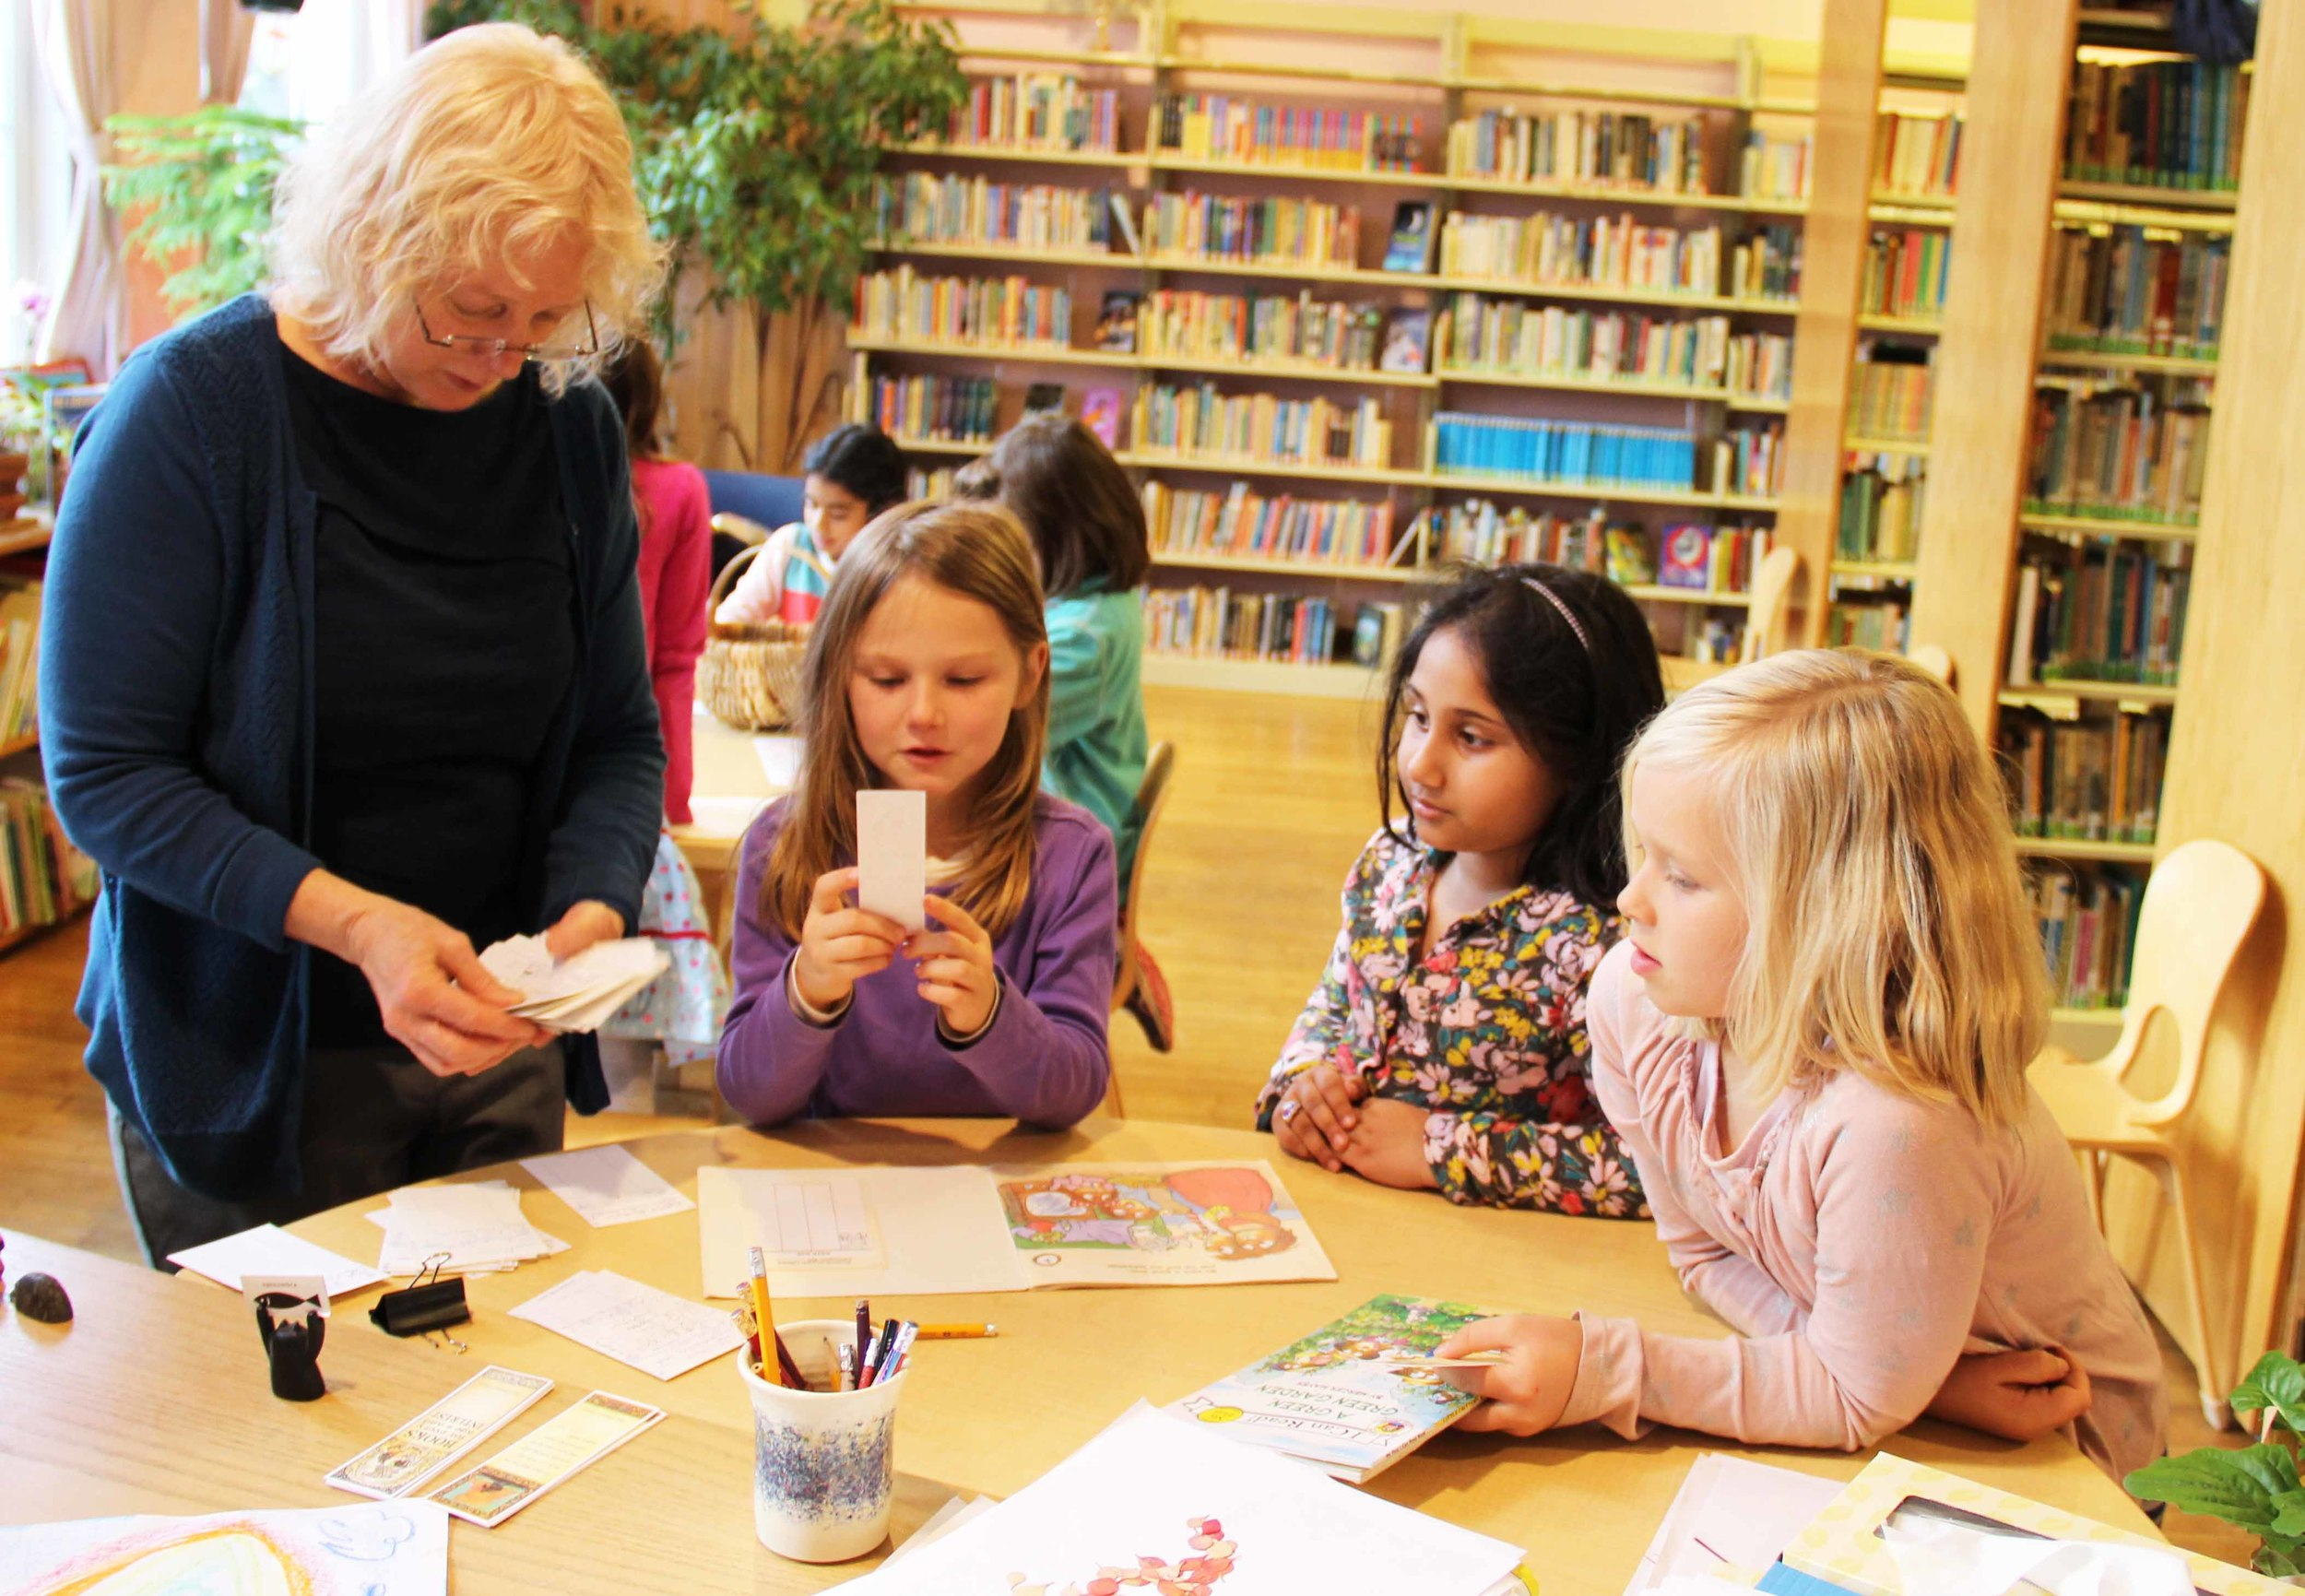 The WSL library is an oasis of light, literacy and learning.